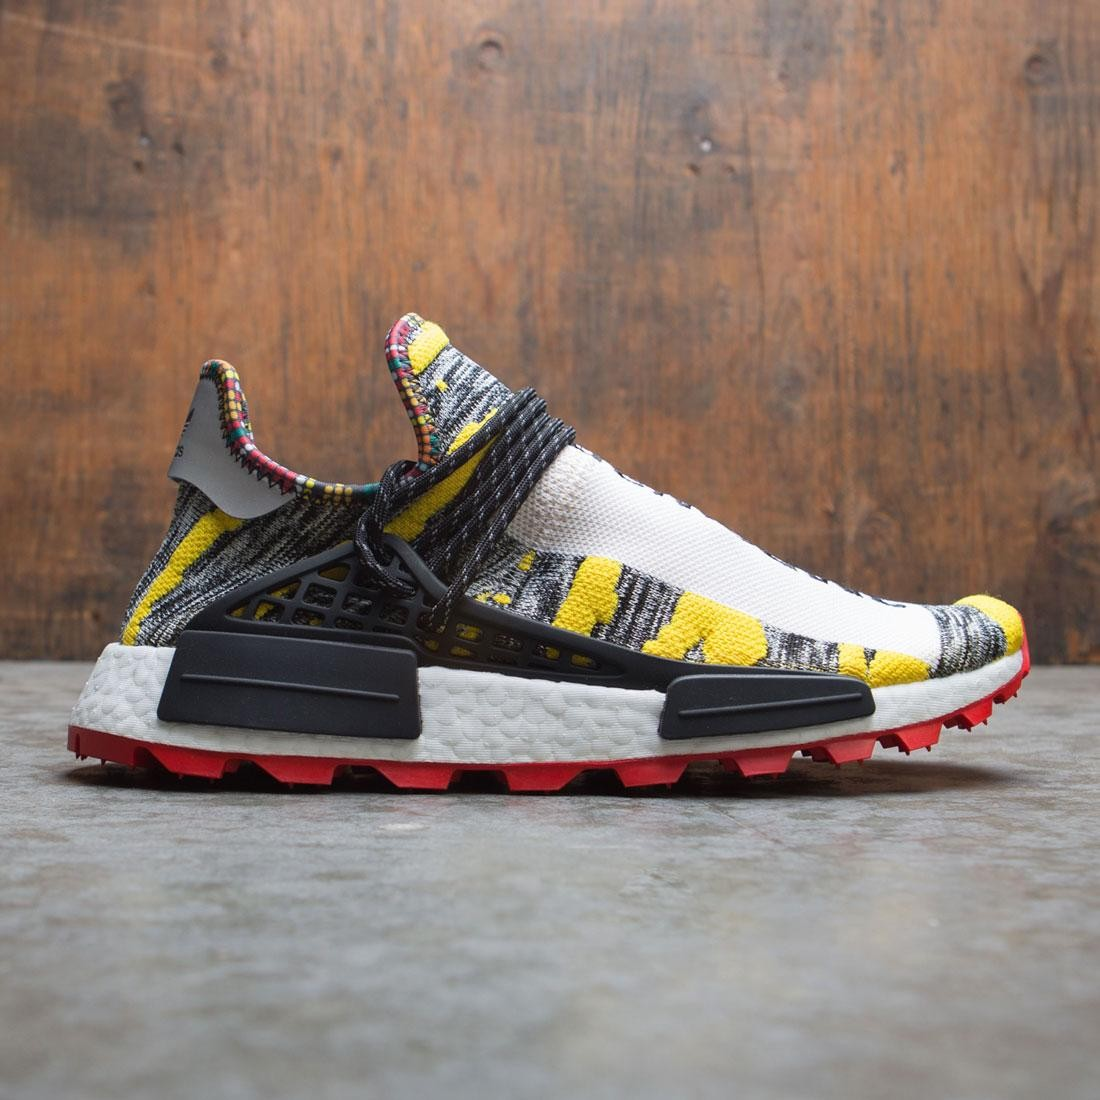 Adidas Consortium x Pharrell Williams Men Solar HU NMD (yellow / core black / red)